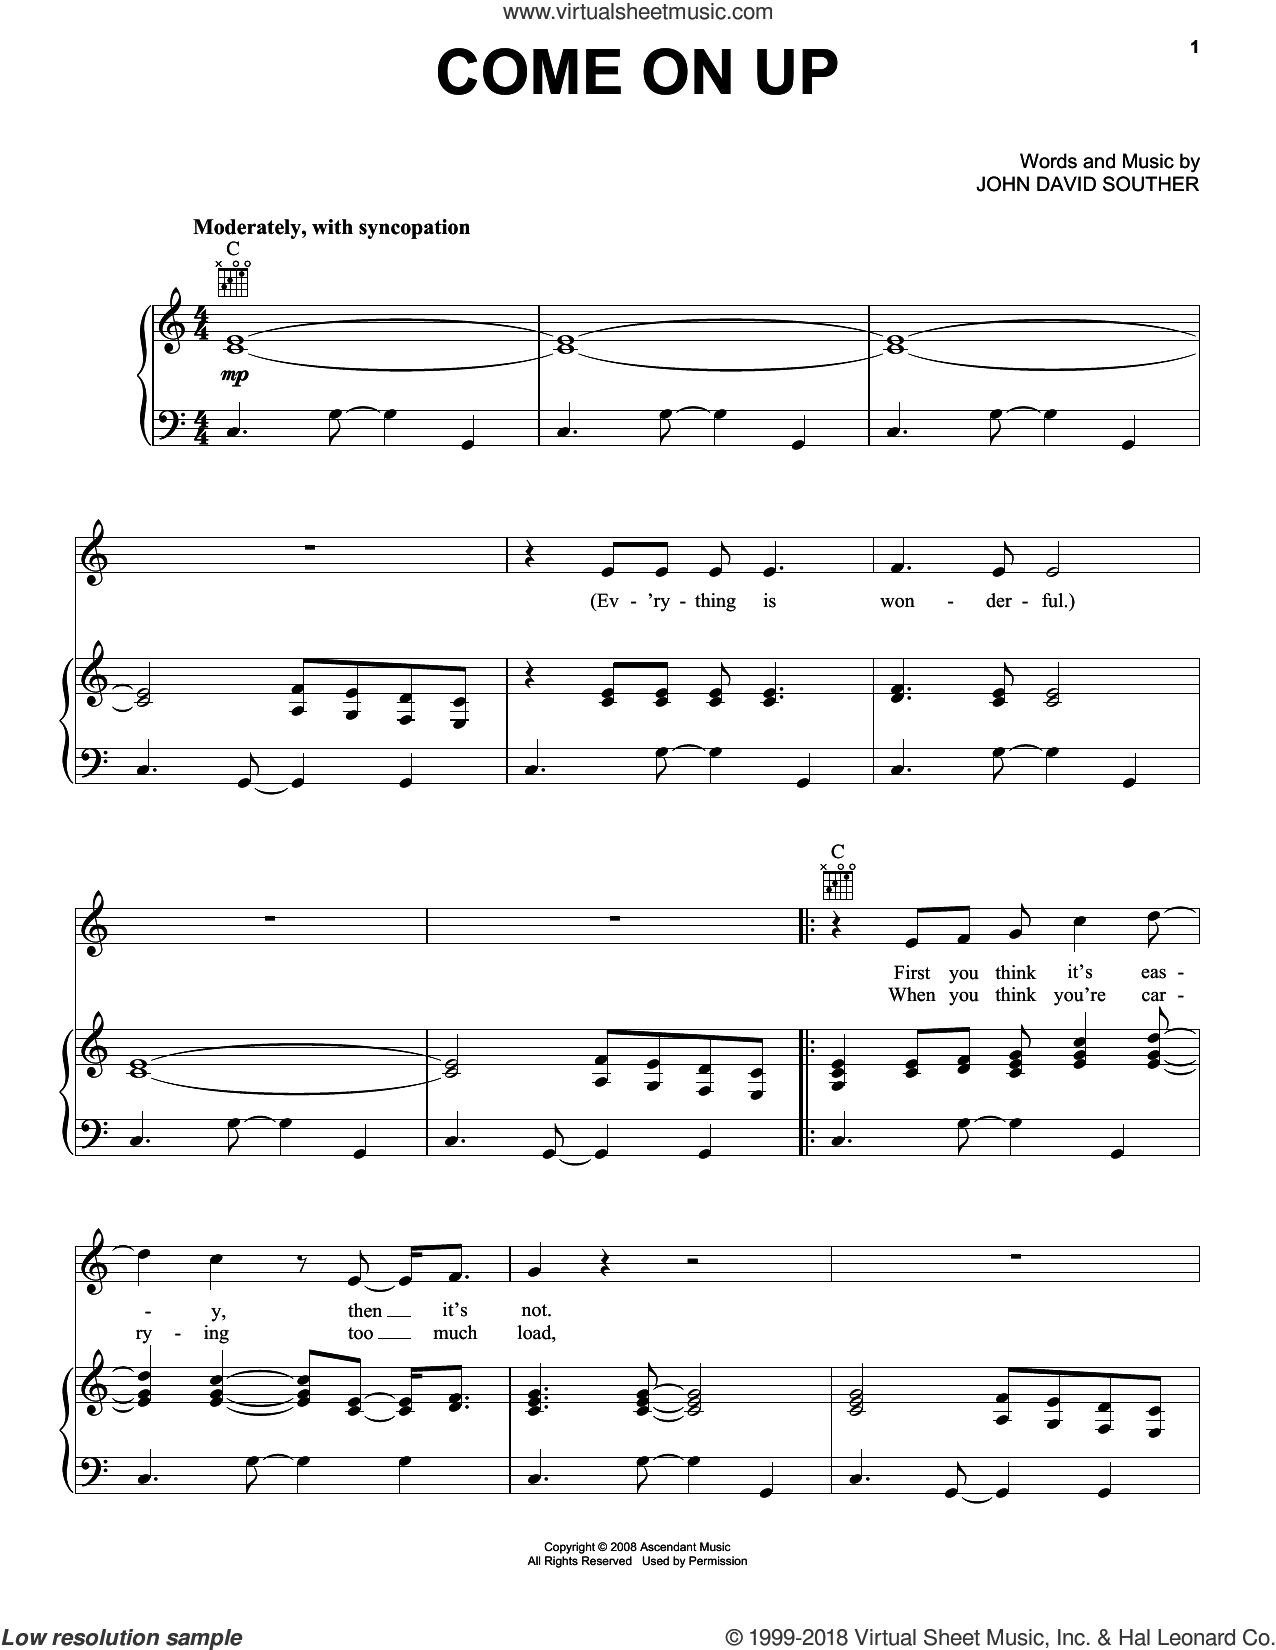 Come On Up sheet music for voice, piano or guitar by John David Souther